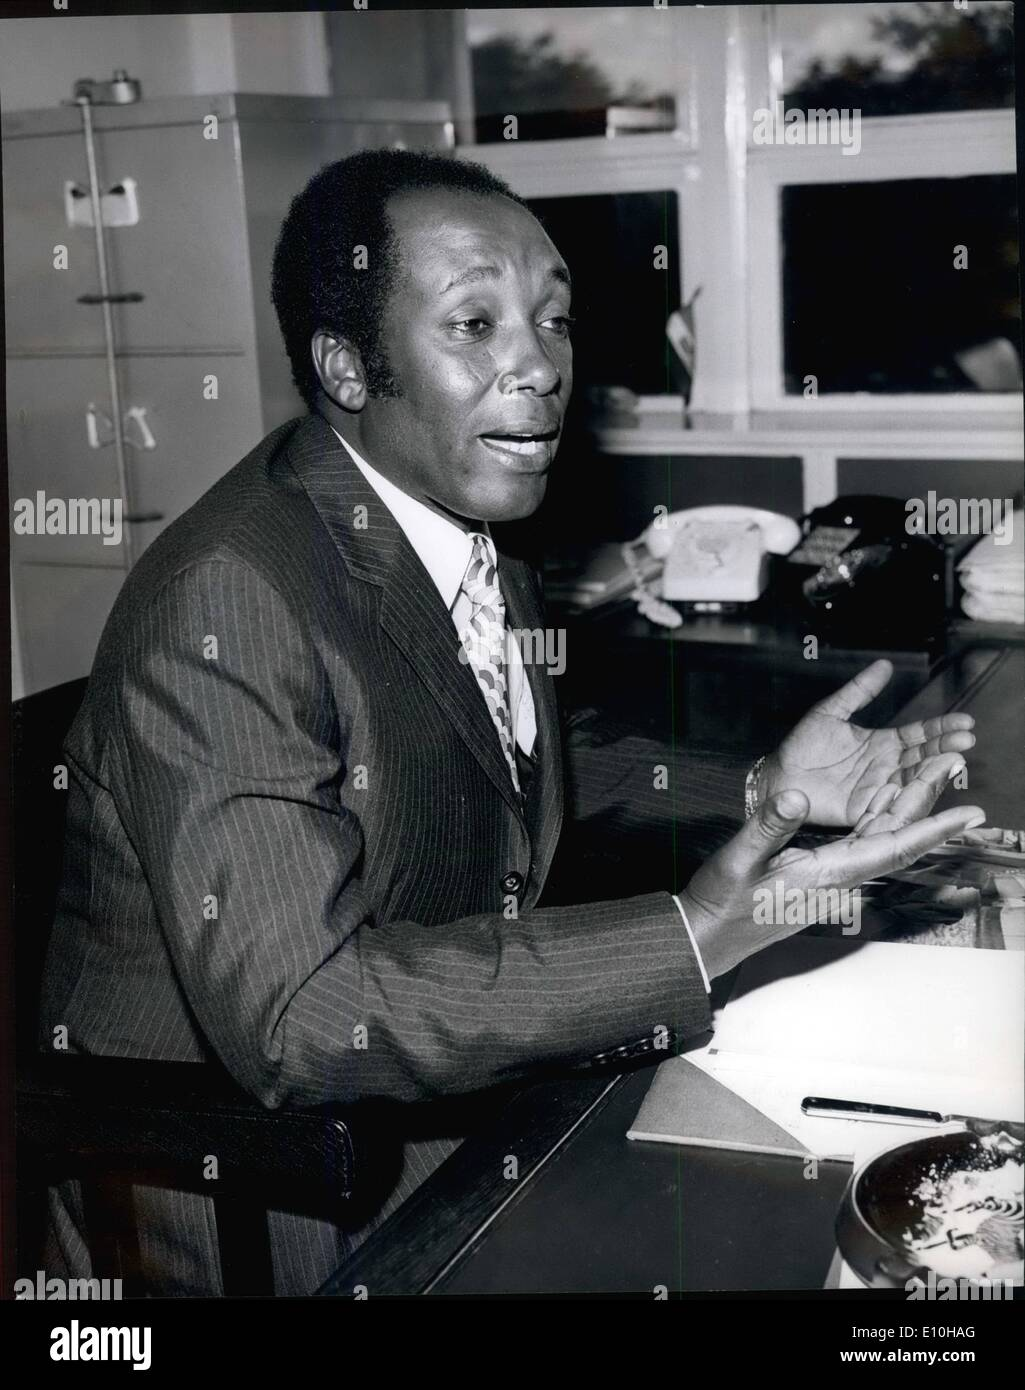 Feb. 02, 1973 - Dr. Njoroge Mungai, Foreign Minister of Kenya. Born Dagoreti, Kenya, 1926. Educated Alliance High School, Universities of Fort Hars (South Africa), Stanford, Columbia. Practised Medicine in Kenya. 1959- 1963. Elected Member of the House of Representatives, 1963. Minister for Health and Housing, 1963. Minister of Defence, 1965. Minister of Foreign Affairs, 1969. Personal physician to the President. Married to Lillian Njeri Njenga, 1972. Credits: Camerapix - Stock Image